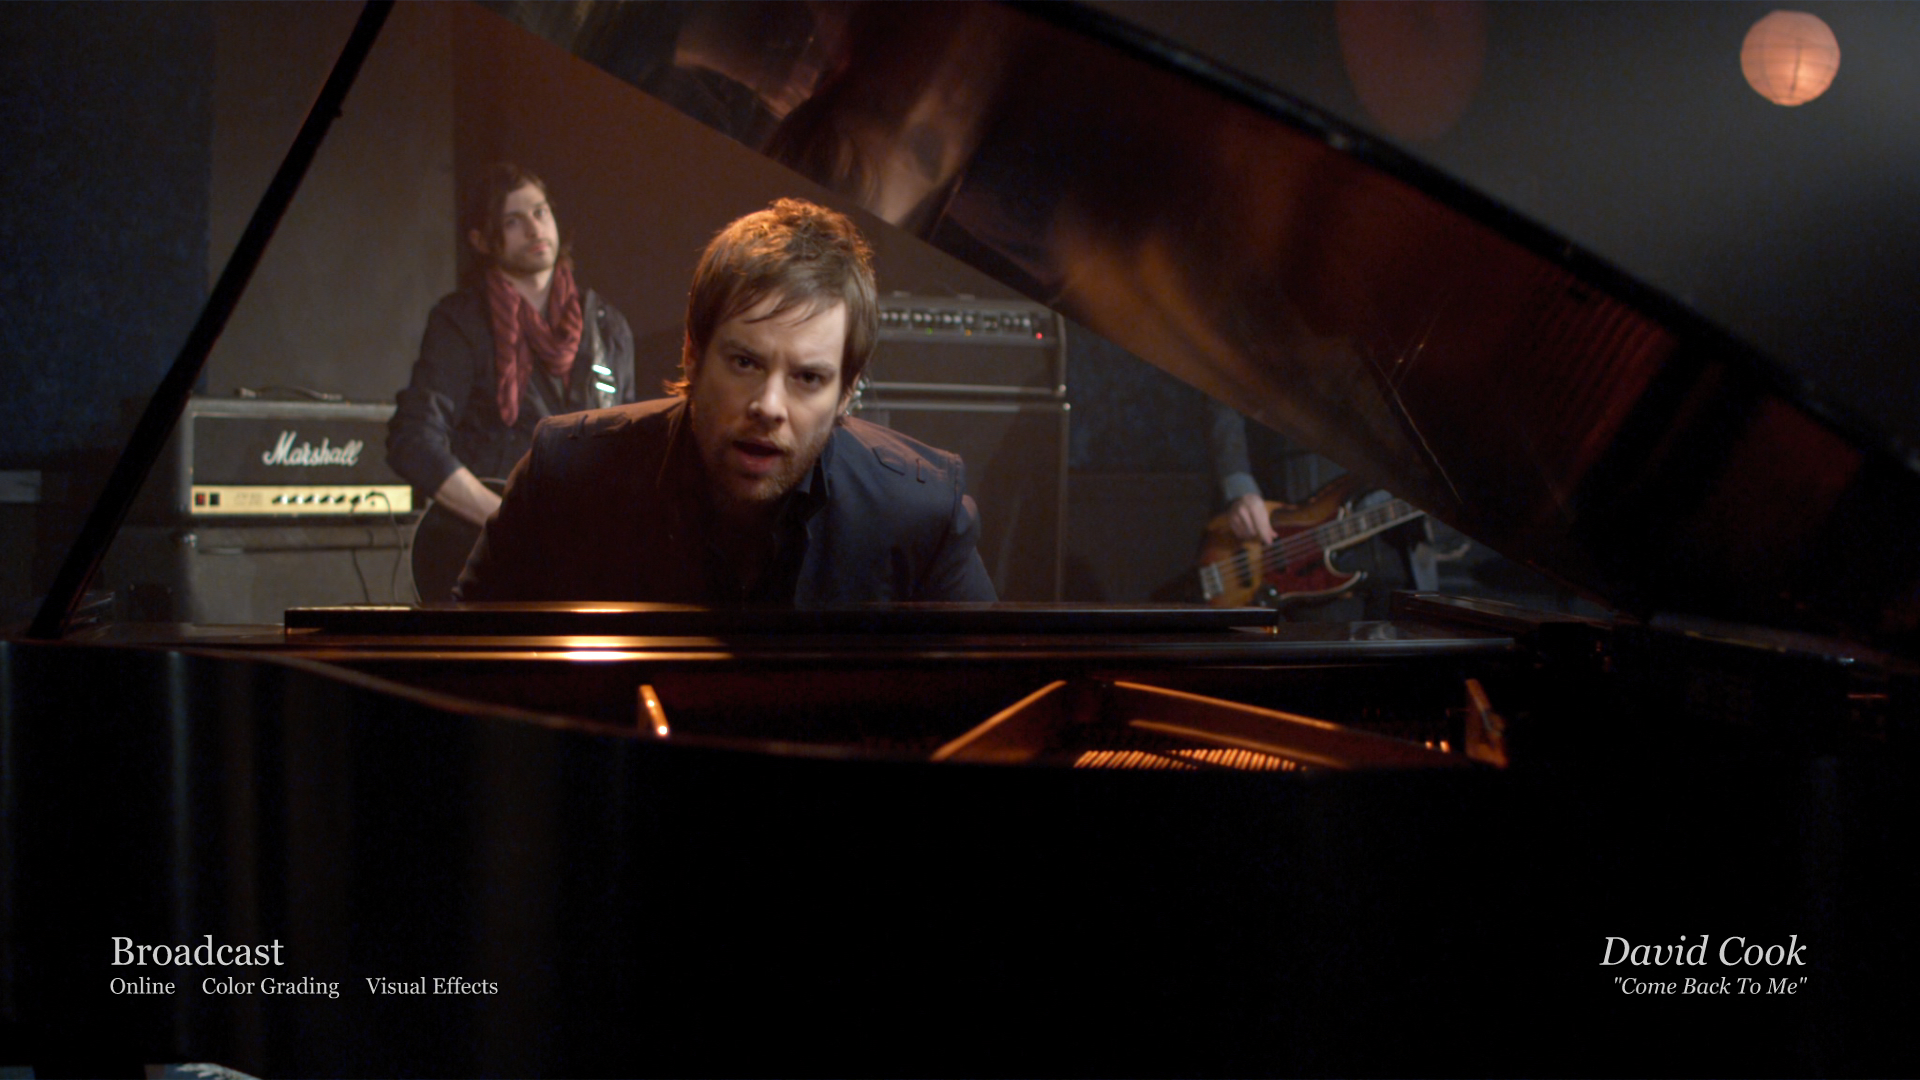 David Cook - Music Video